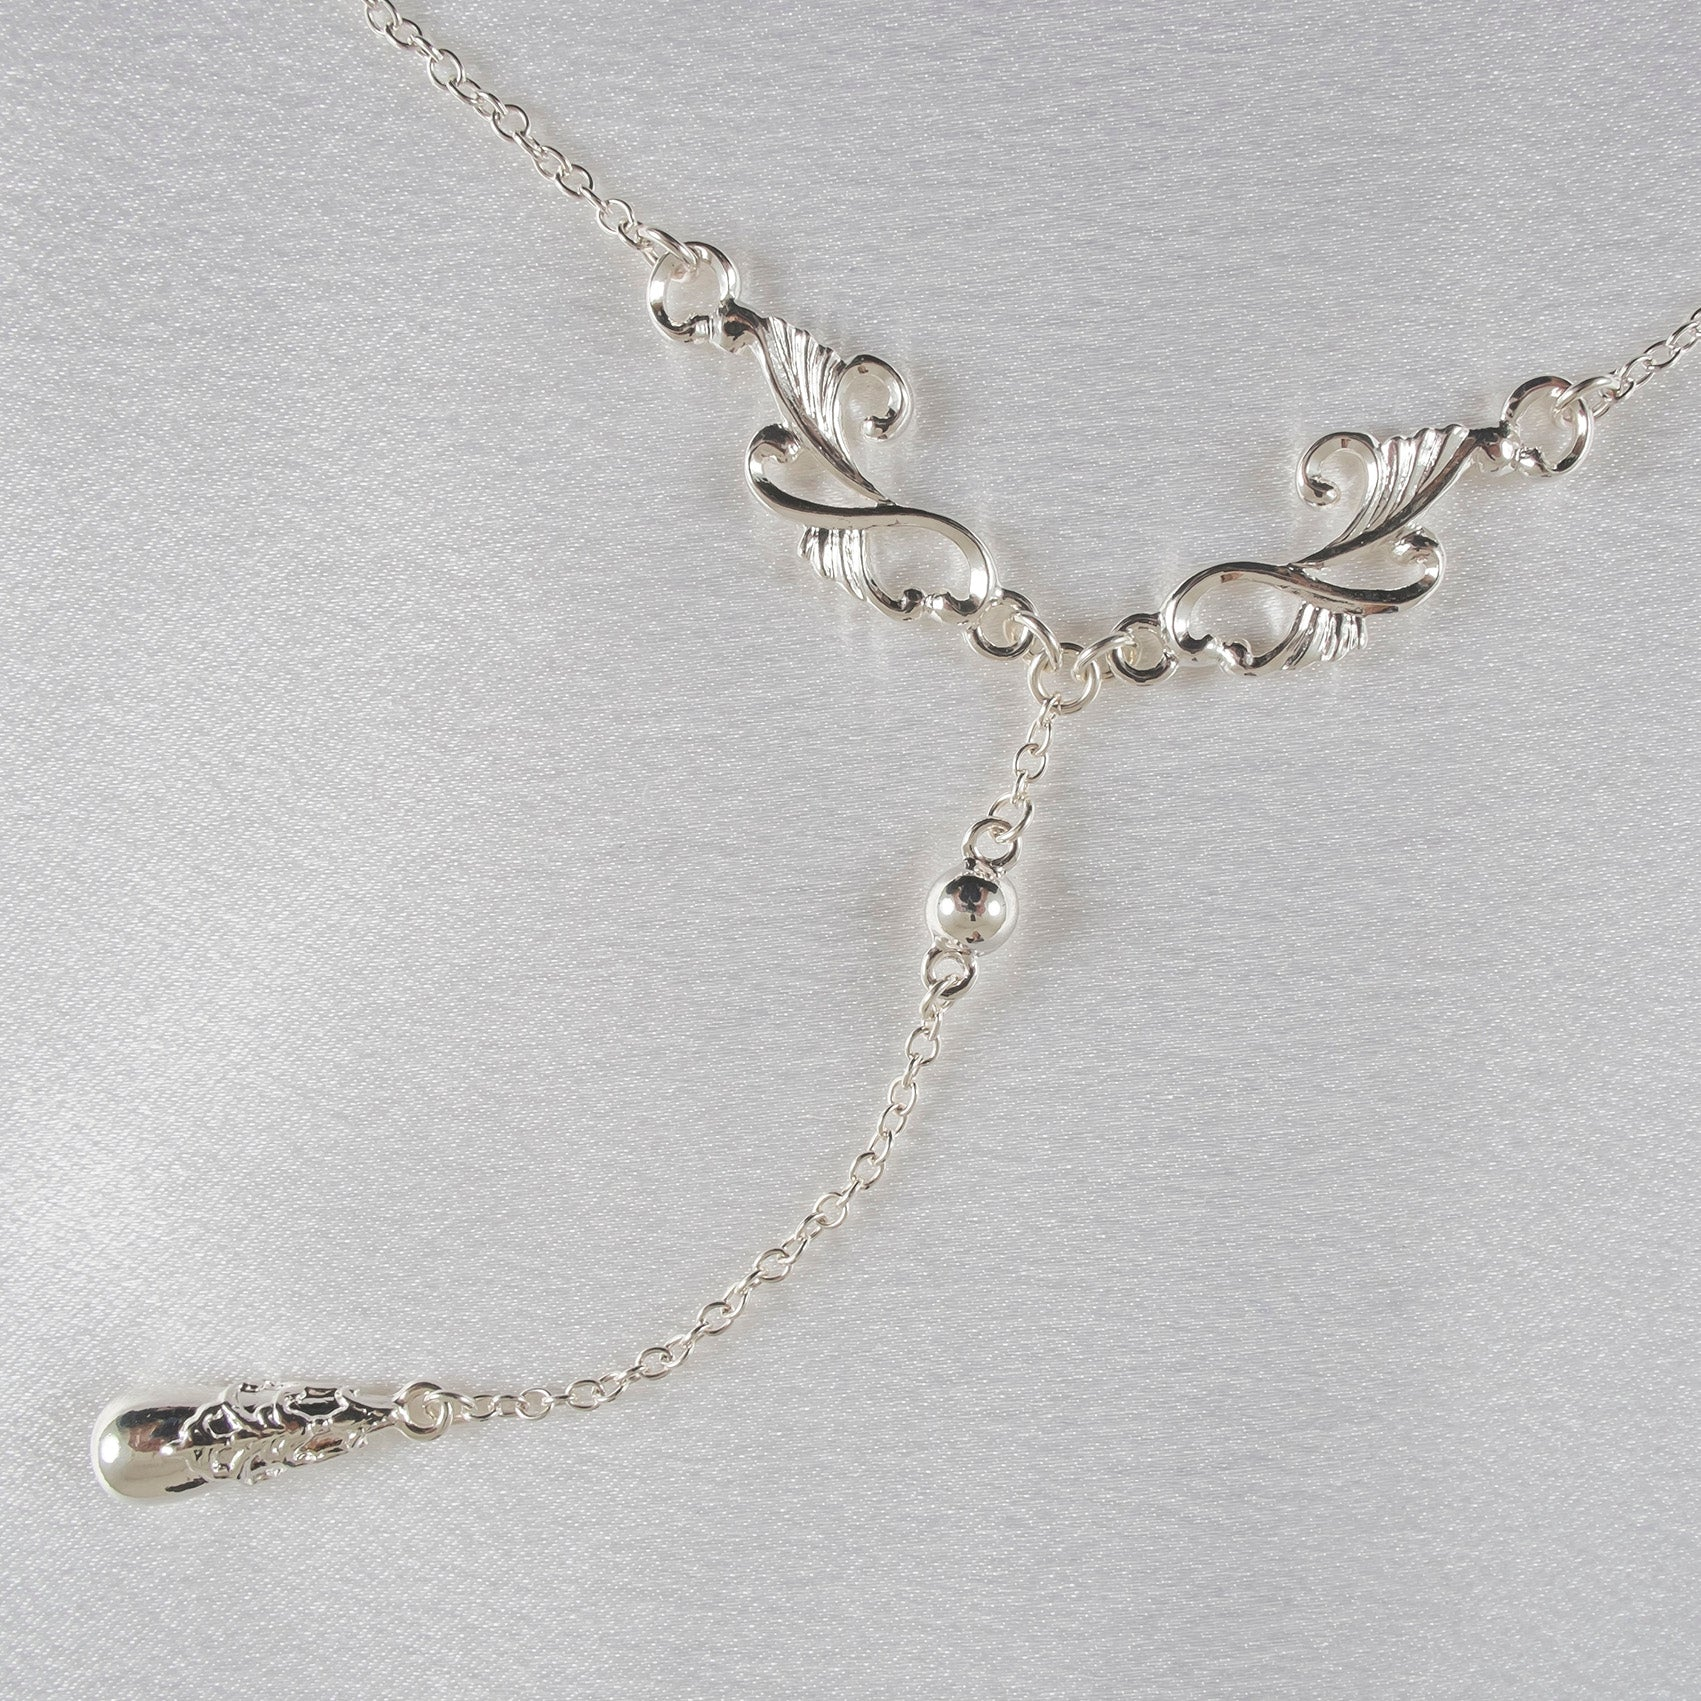 Silver Ornate Teardrop Pendant Waist Chain